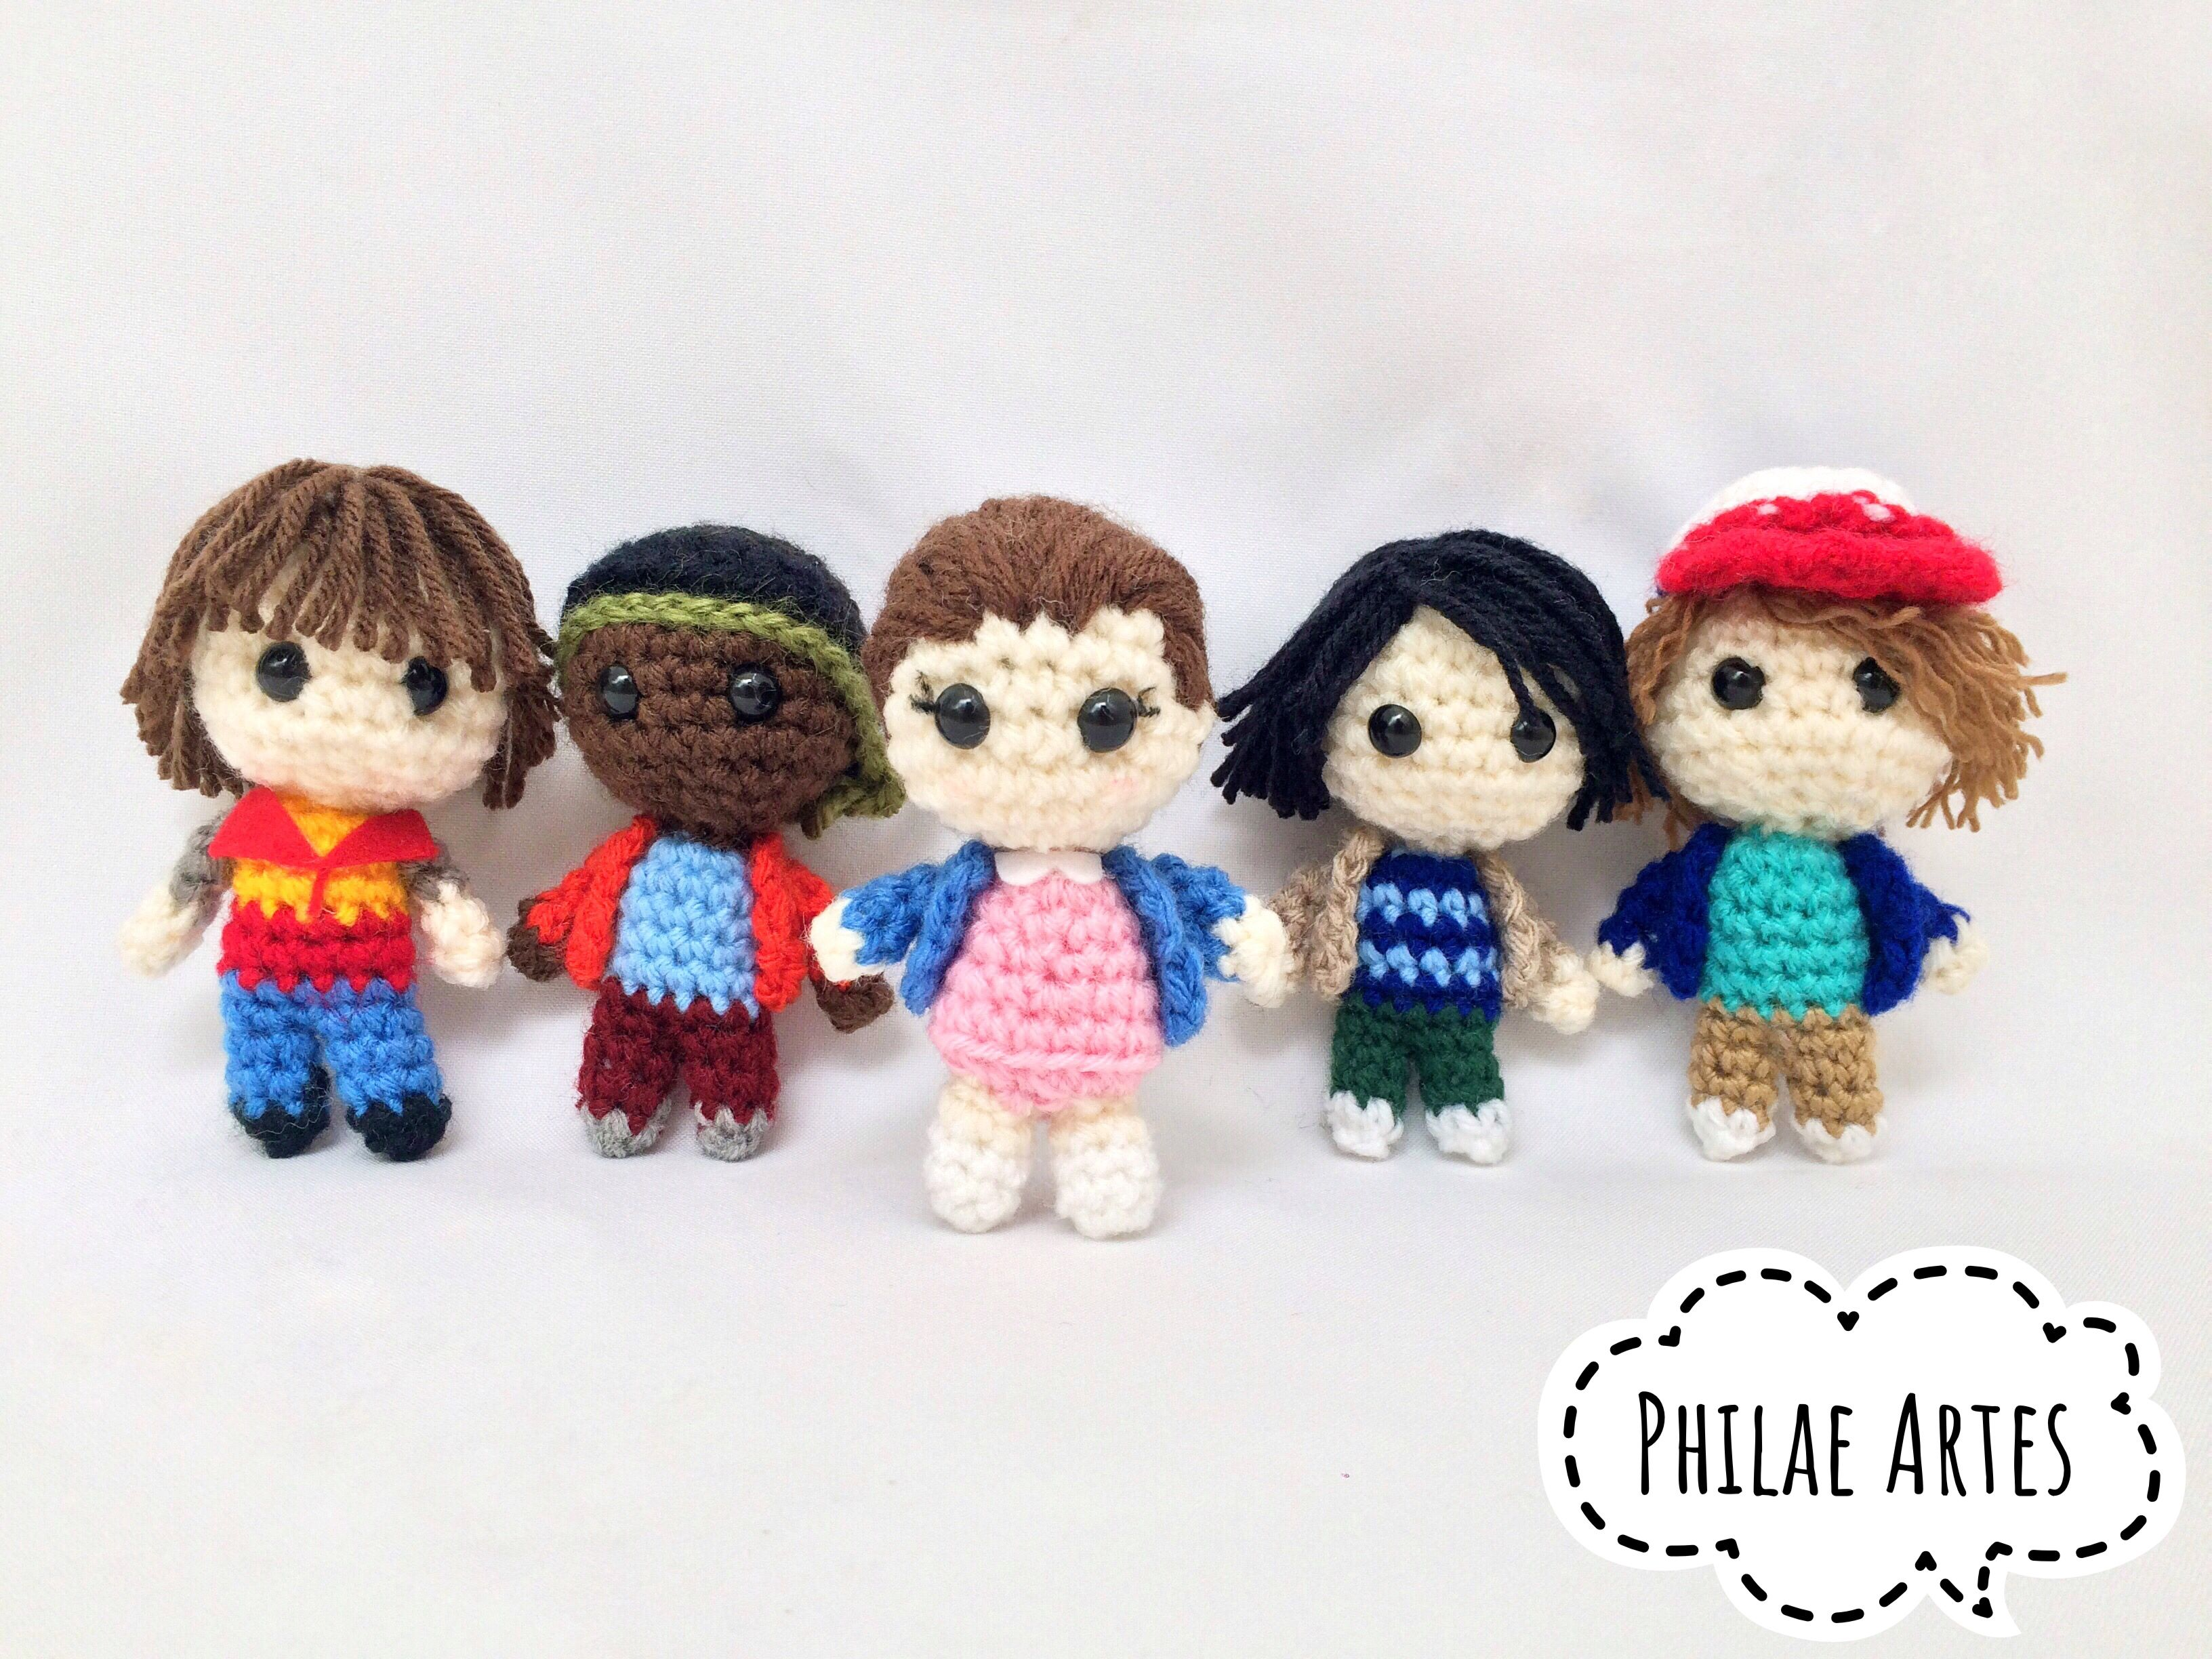 Free Naruto Amigurumi Pattern : Stranger things amigurumi stranger things crocheted toys and